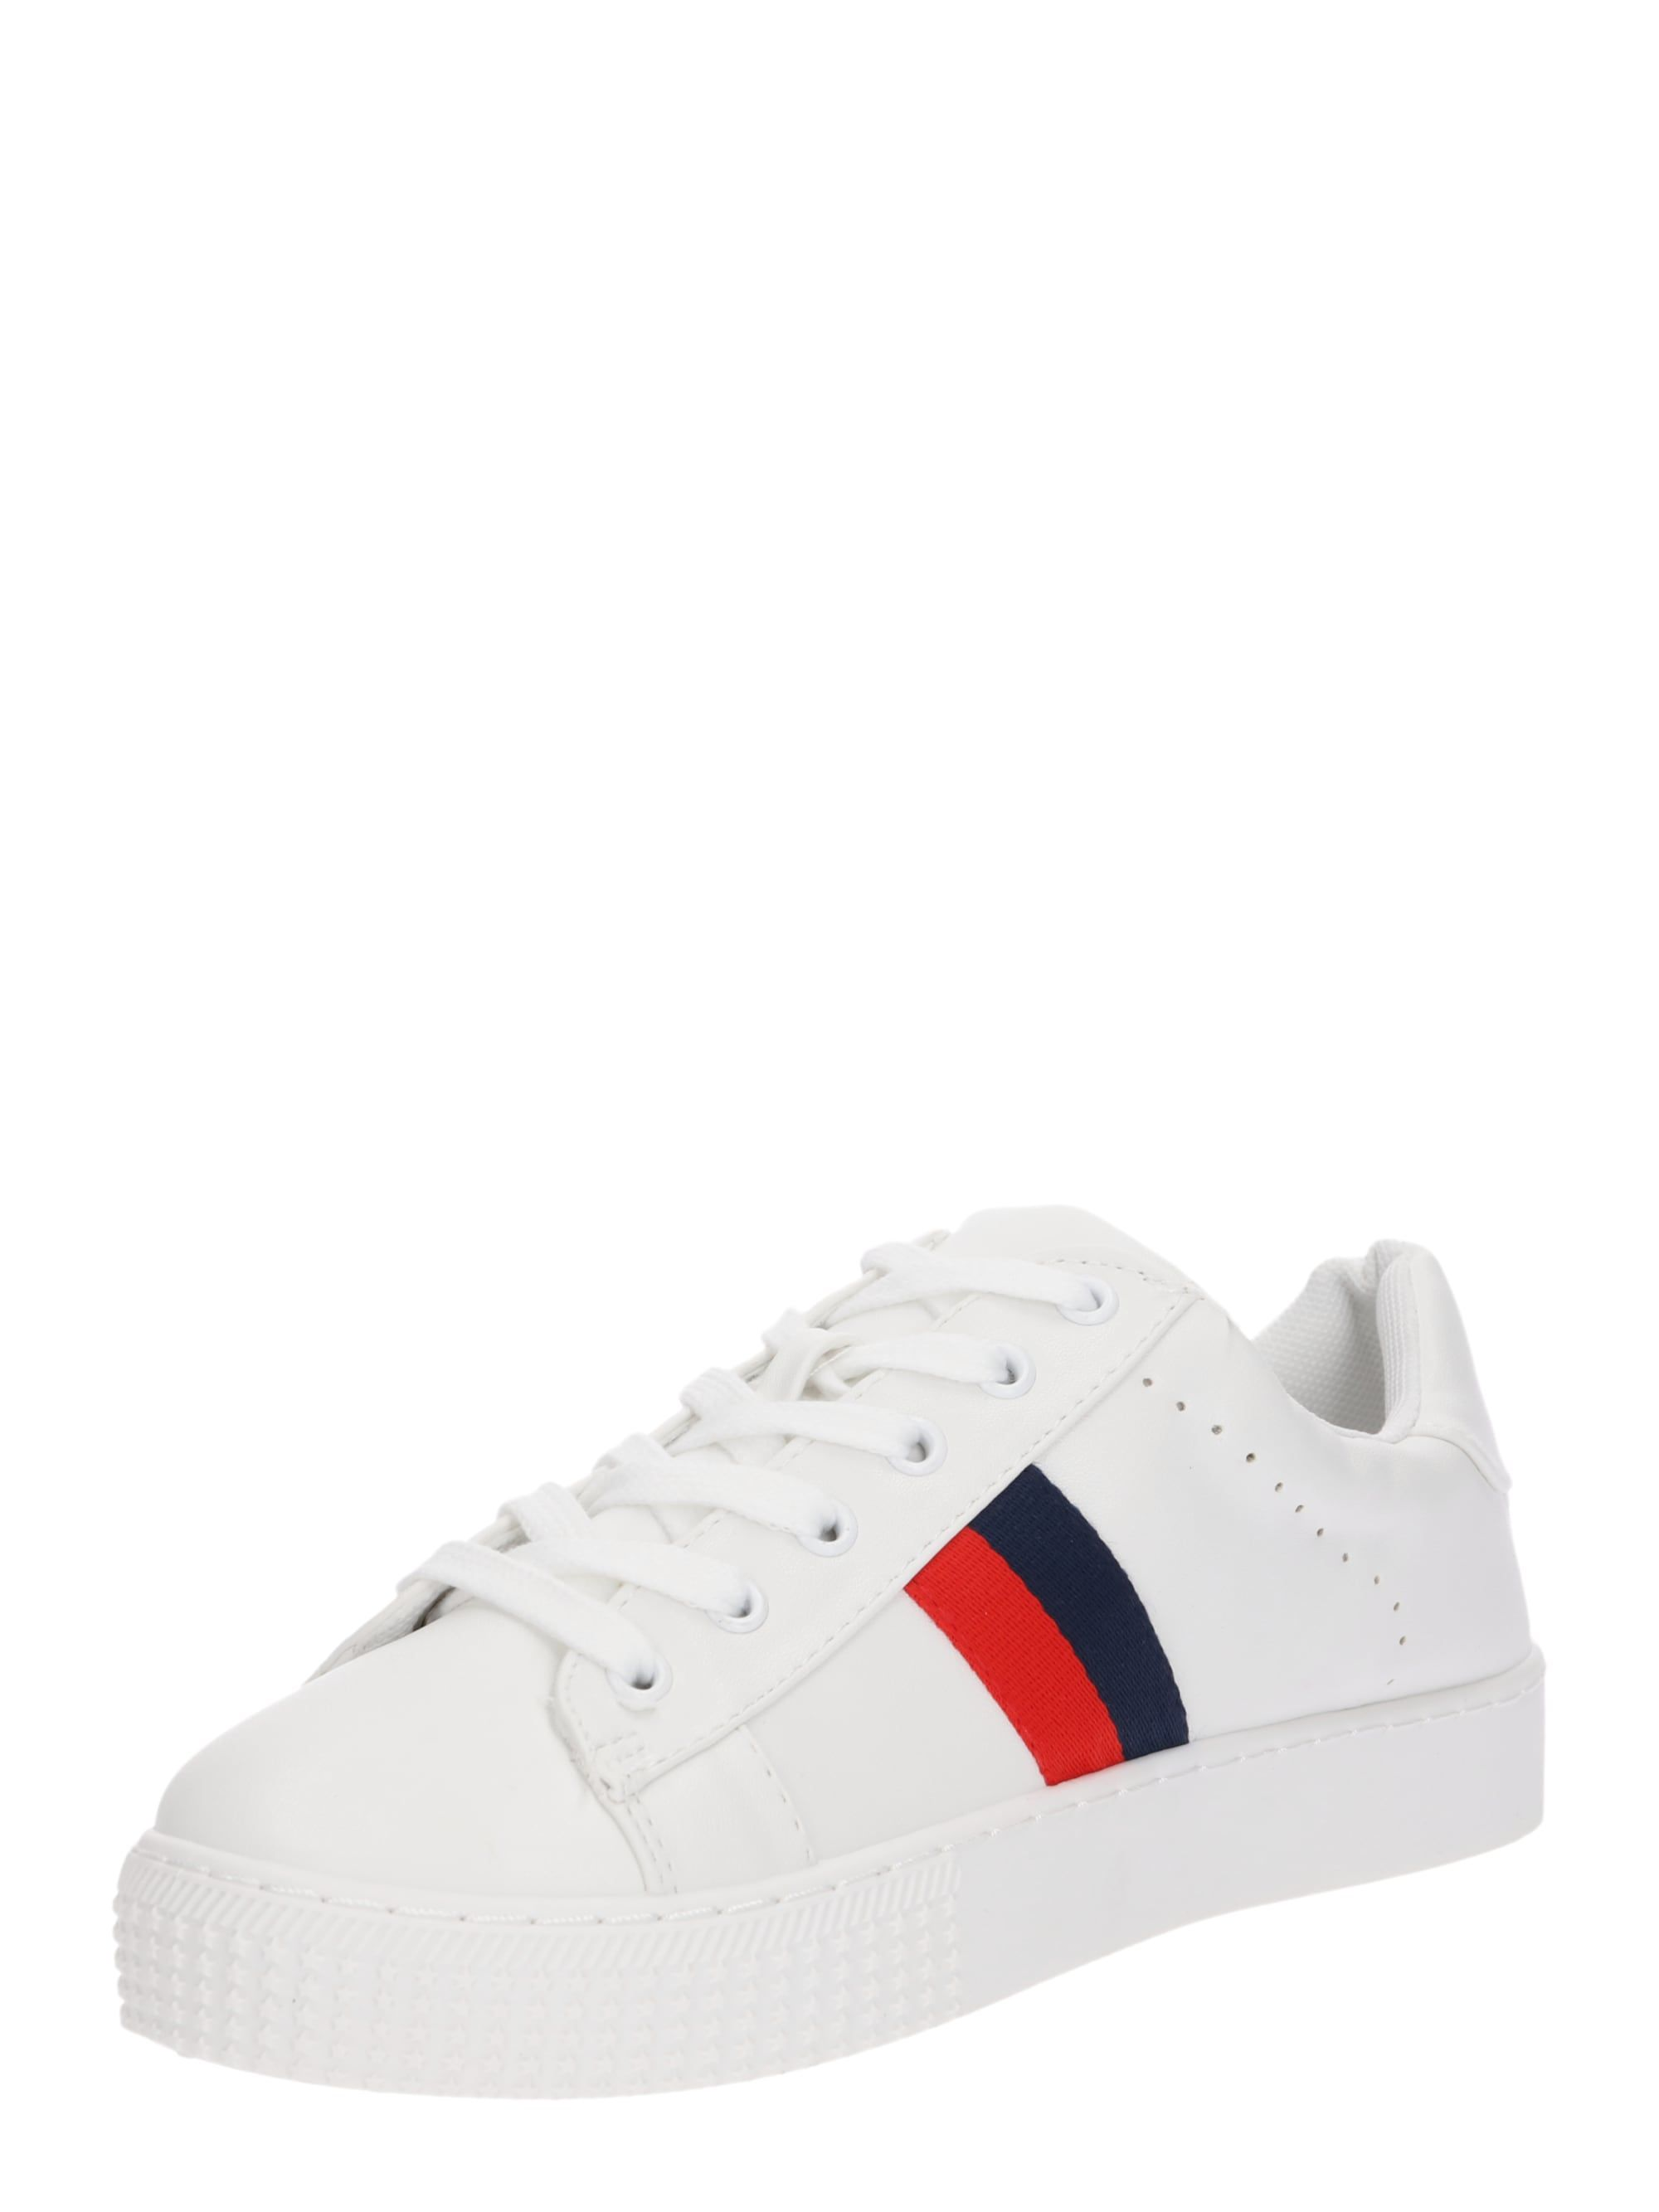 Sneaker ´RP18 CASUALS AND SPORTS MIPEY - STRIPE LACEUP P - 225´